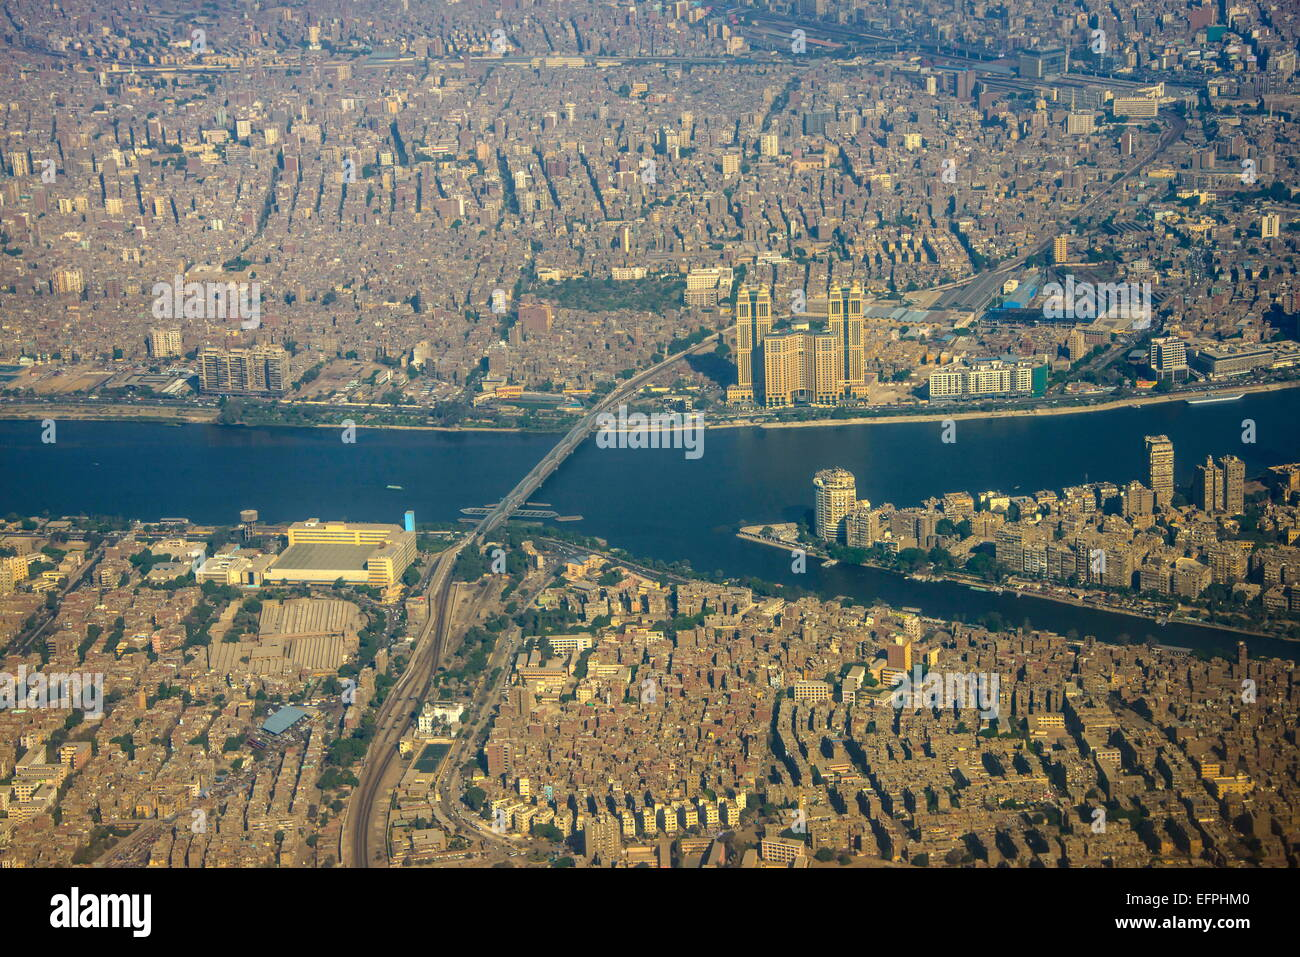 Aerial of the center of Cairo and the River Nile, Egypt, North Africa, Africa - Stock Image